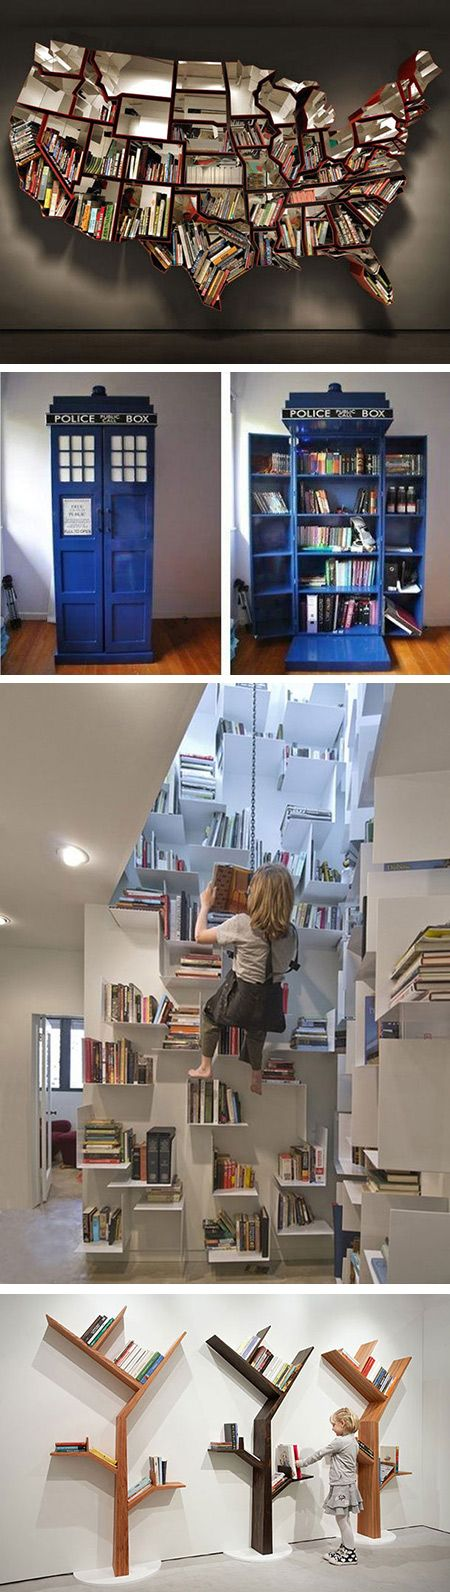 32 Cool and Creative Bookshelves That Geeks Would Love - TechEBlog. Soo awesome!!!!